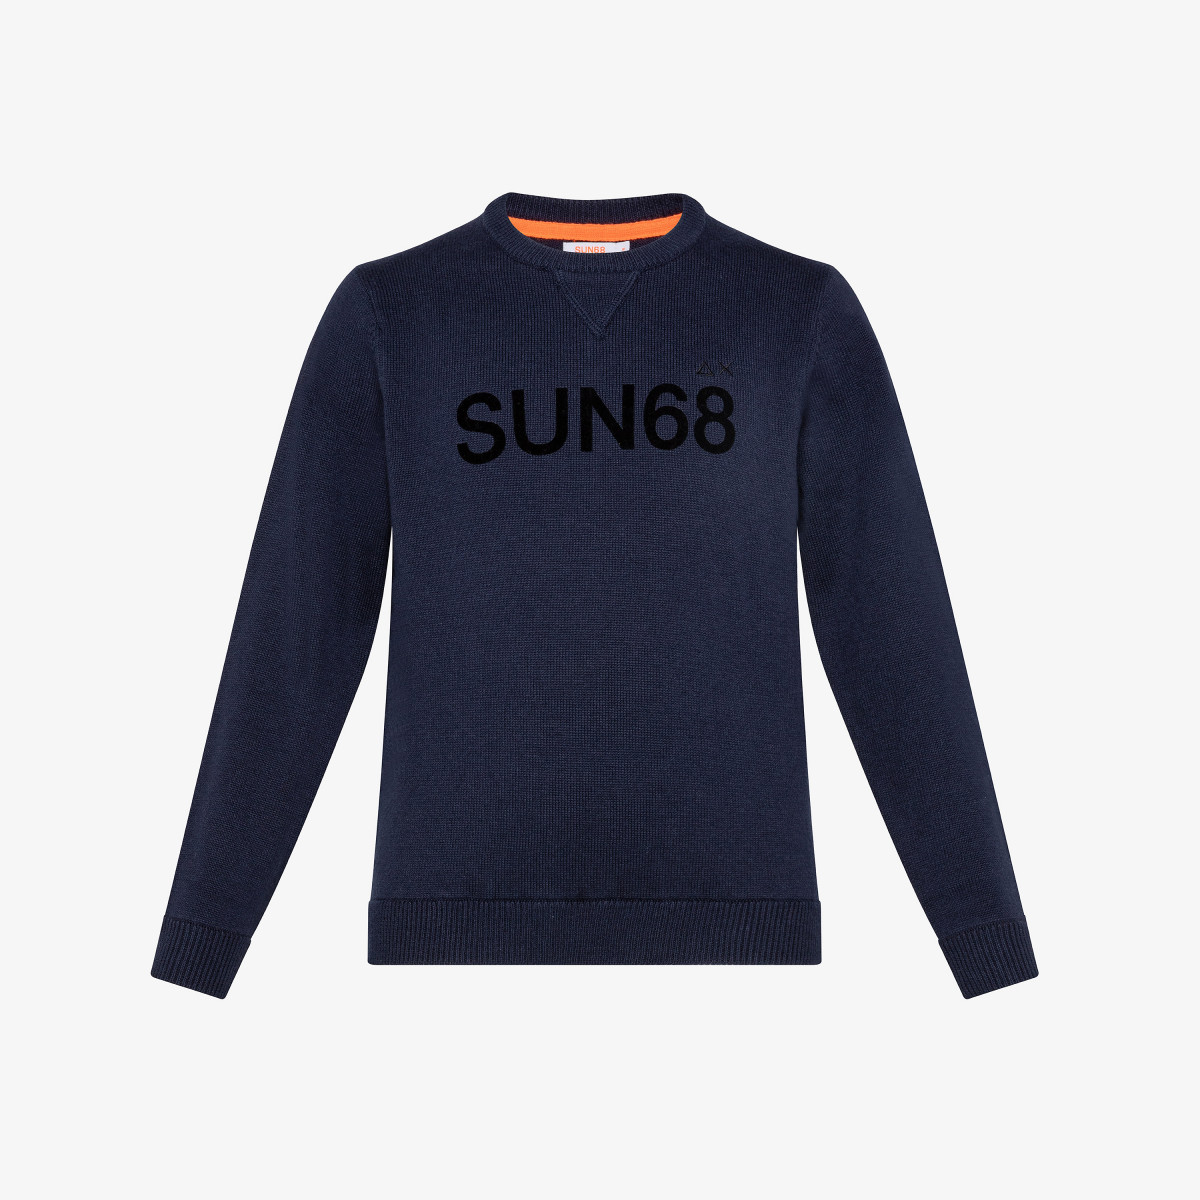 BOY'S ROUND LETTERING ON CHEST NAVY BLUE